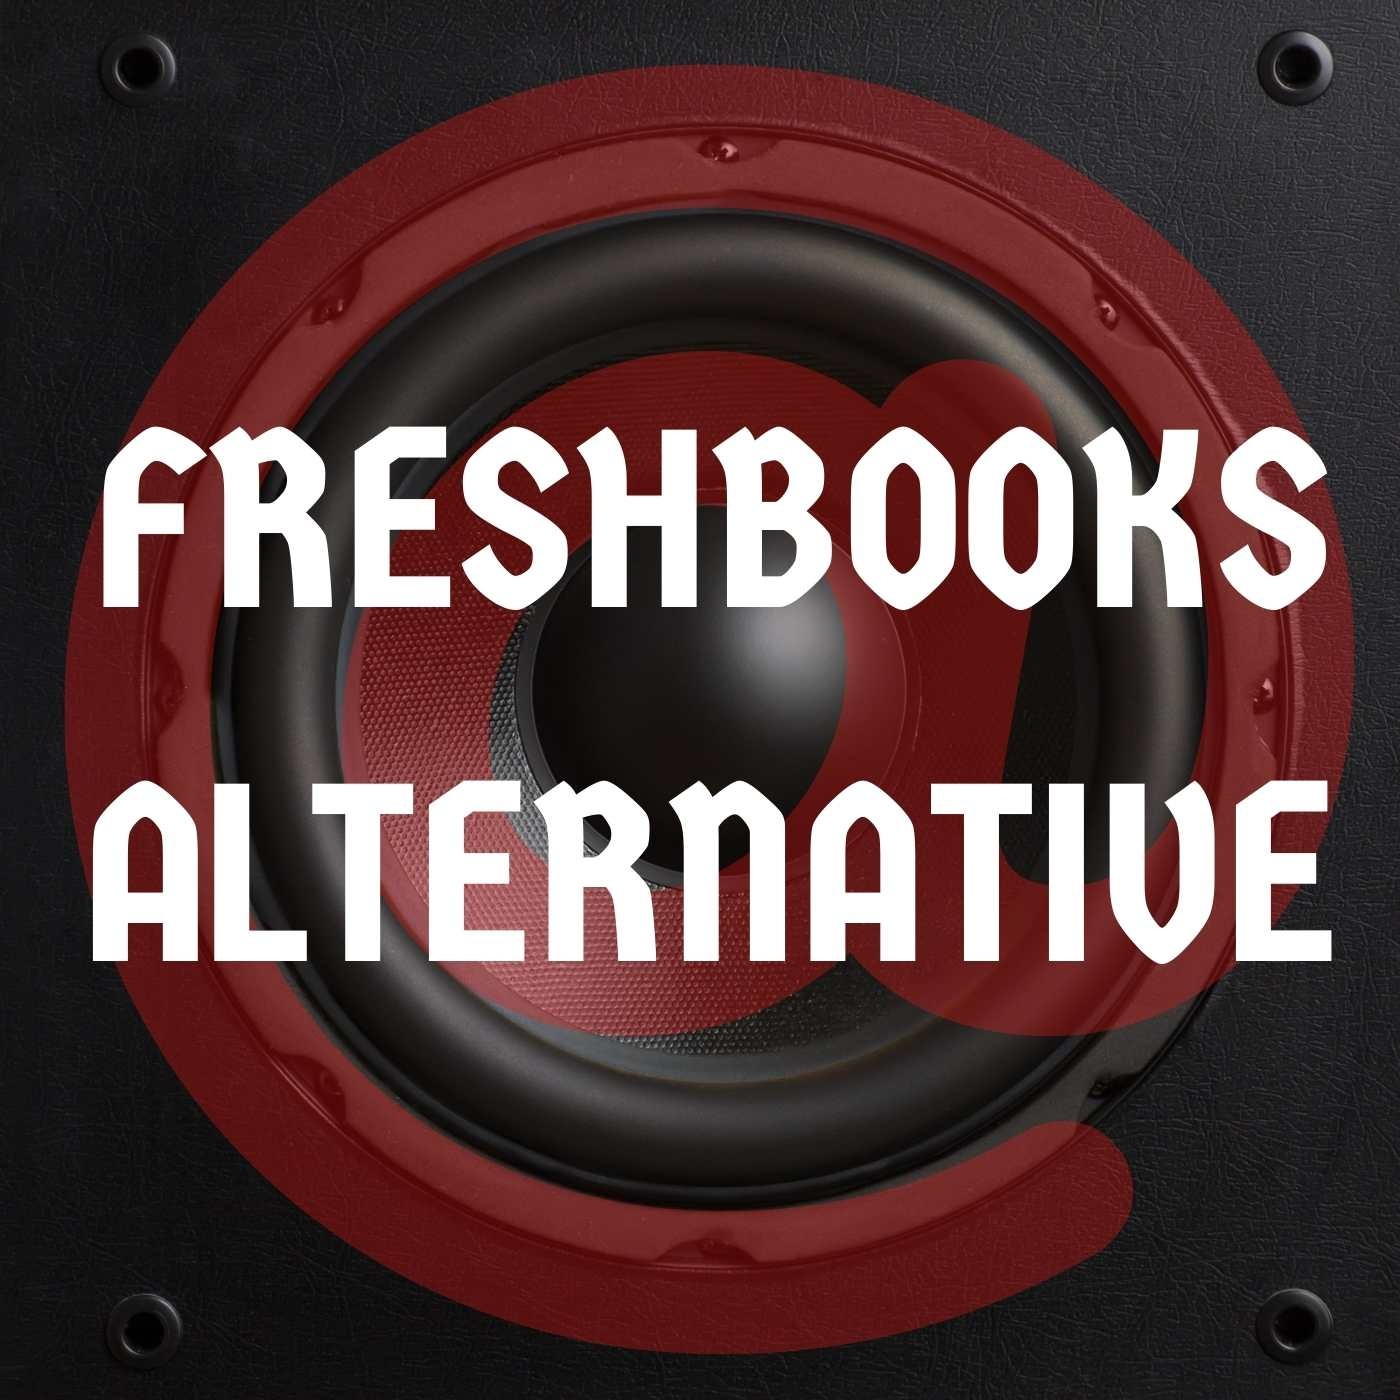 And.co: A Great Alternative to Freshbooks